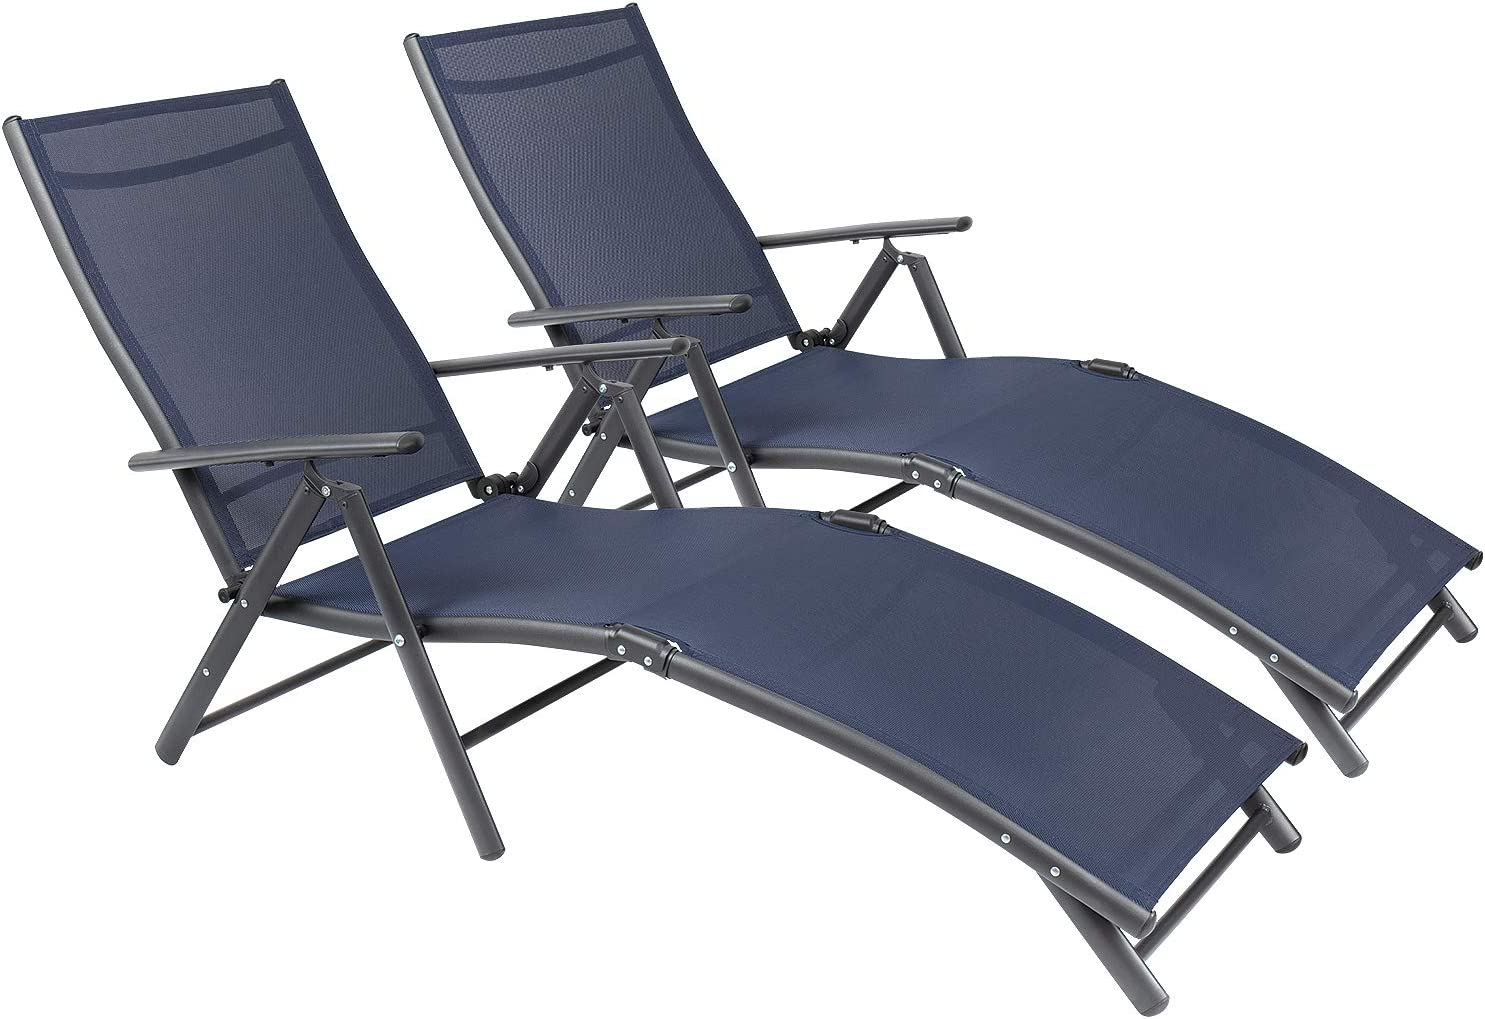 - Amazon.com: Tuoze Outdoor Chaise Lounge Chairs Patio Furniture